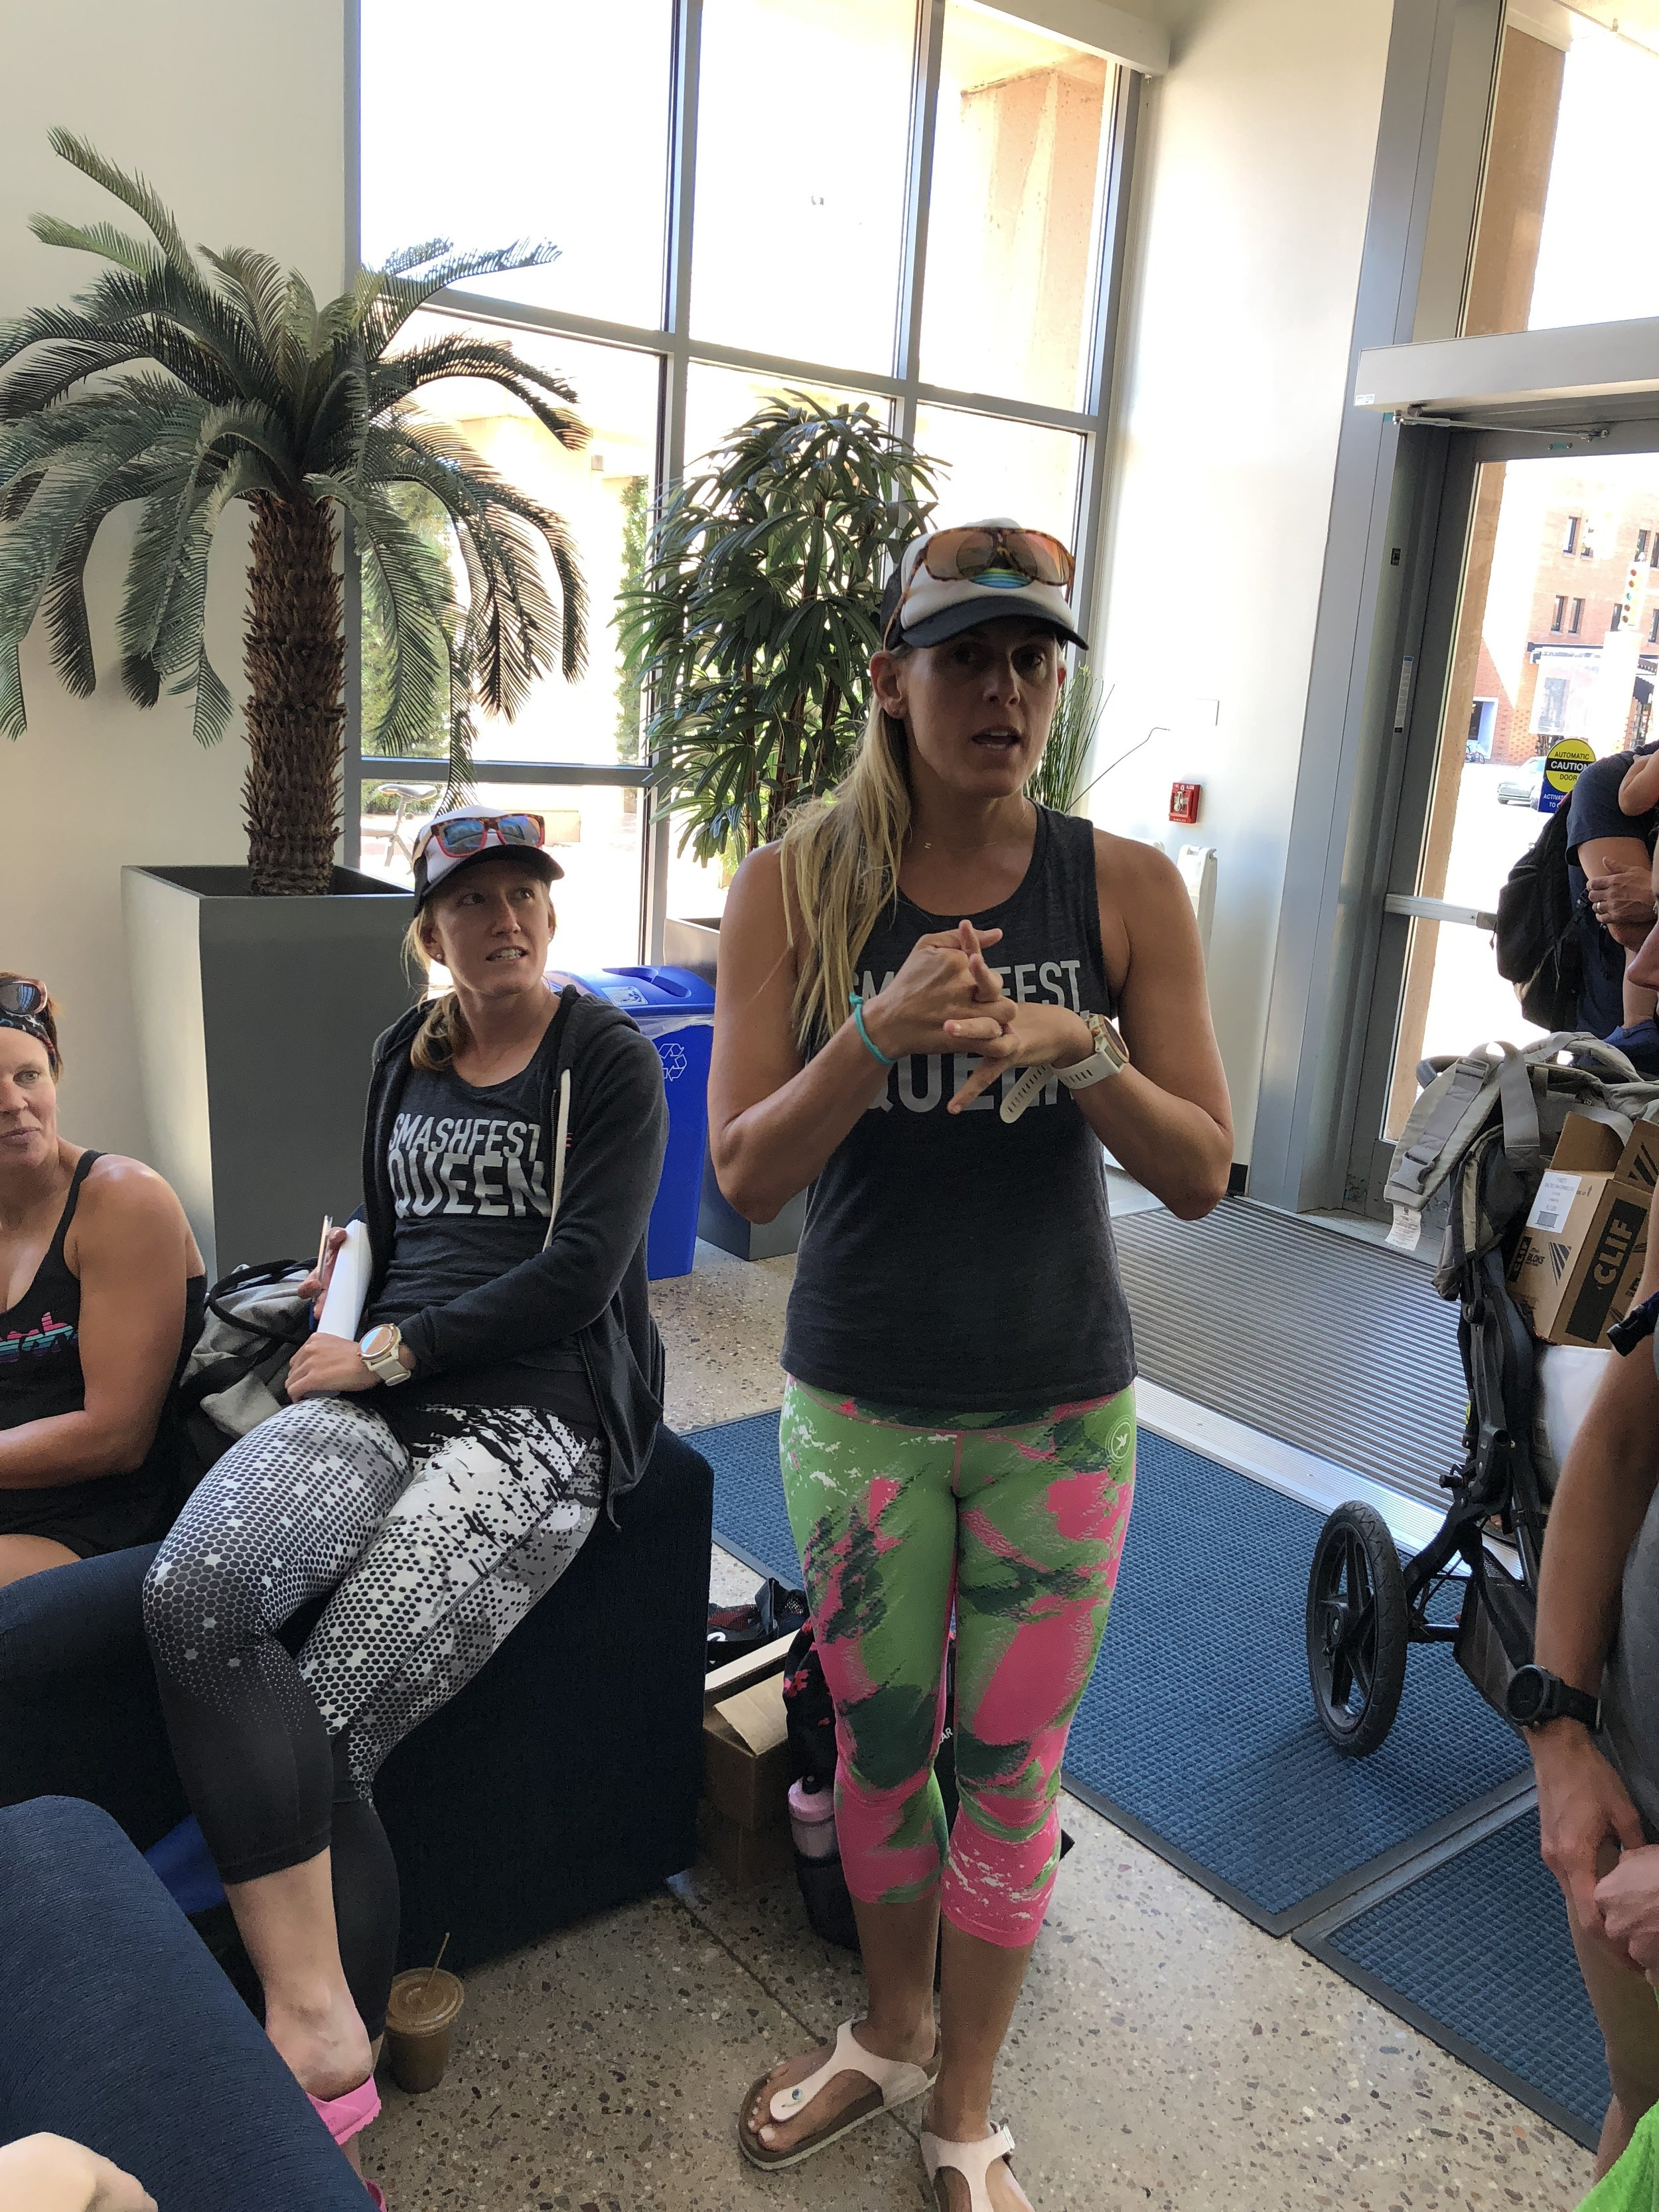 My coach Hillary Biscay, (standing), giving us the camp kick-off speech before our first workout on Thursday afternoon, a 10,000 yard swim, alongside our other coach, Alyssa Godesky, (seated).